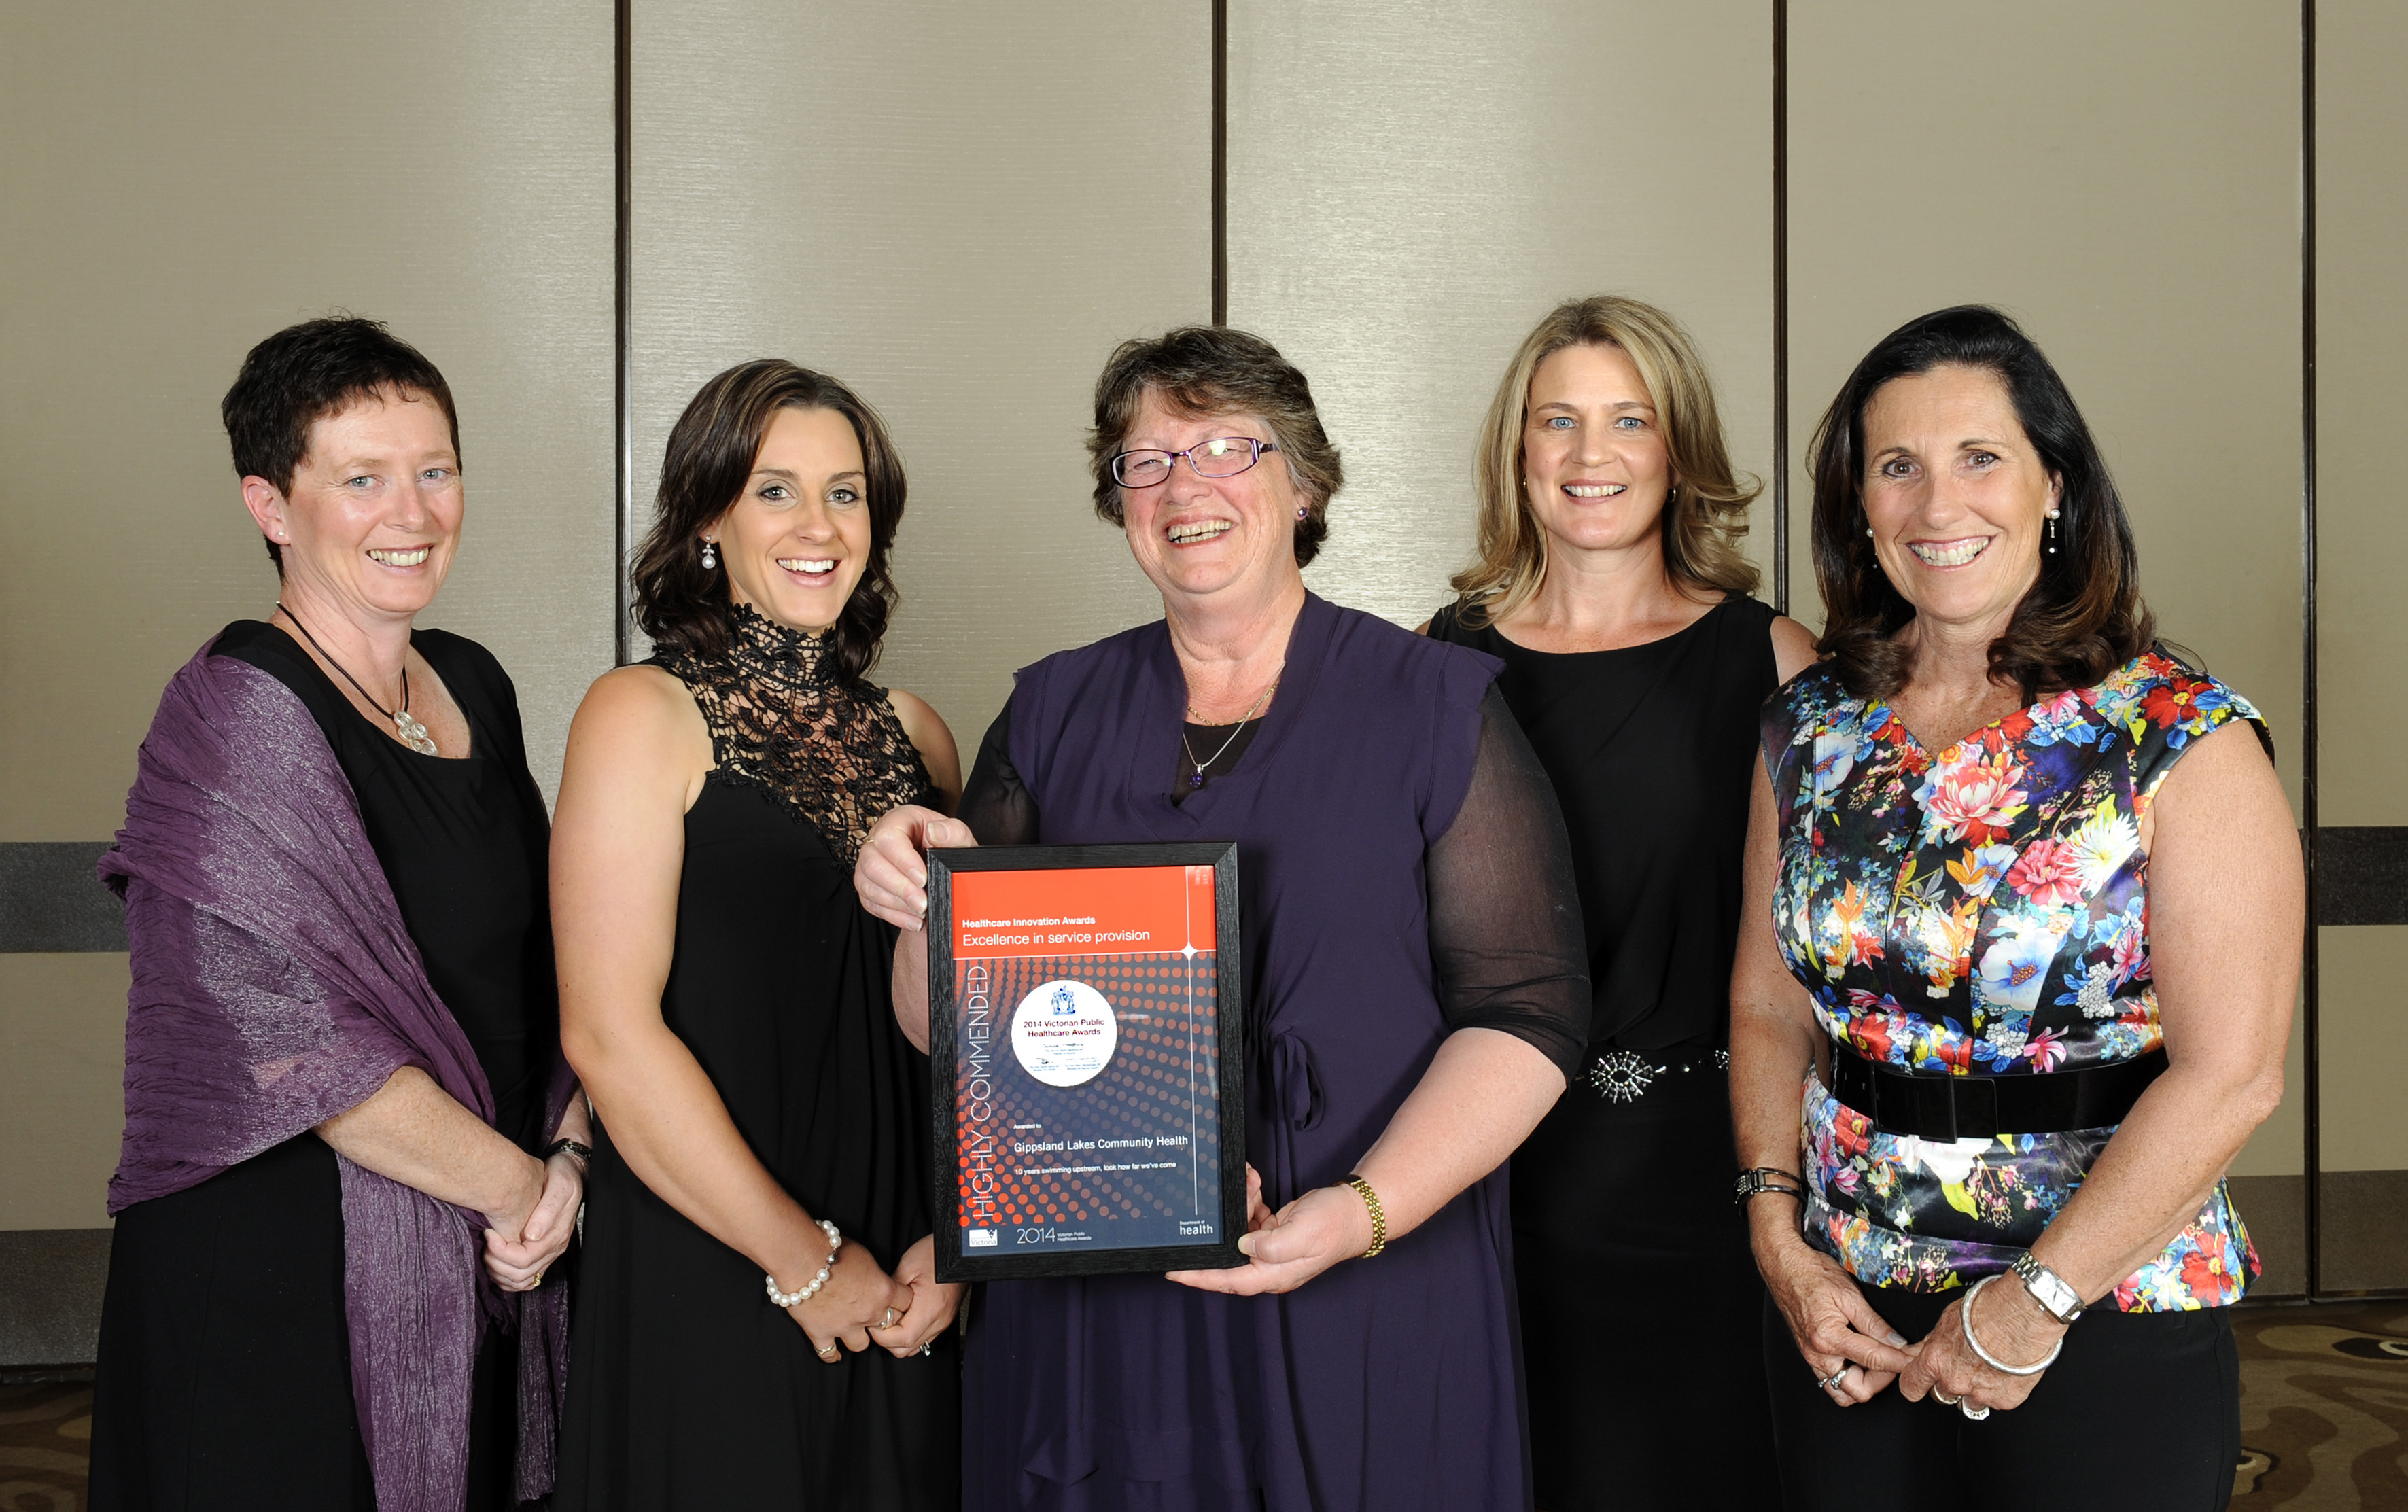 Award Night Healthcare Innovation Awards Excellence in Service Provision 2014